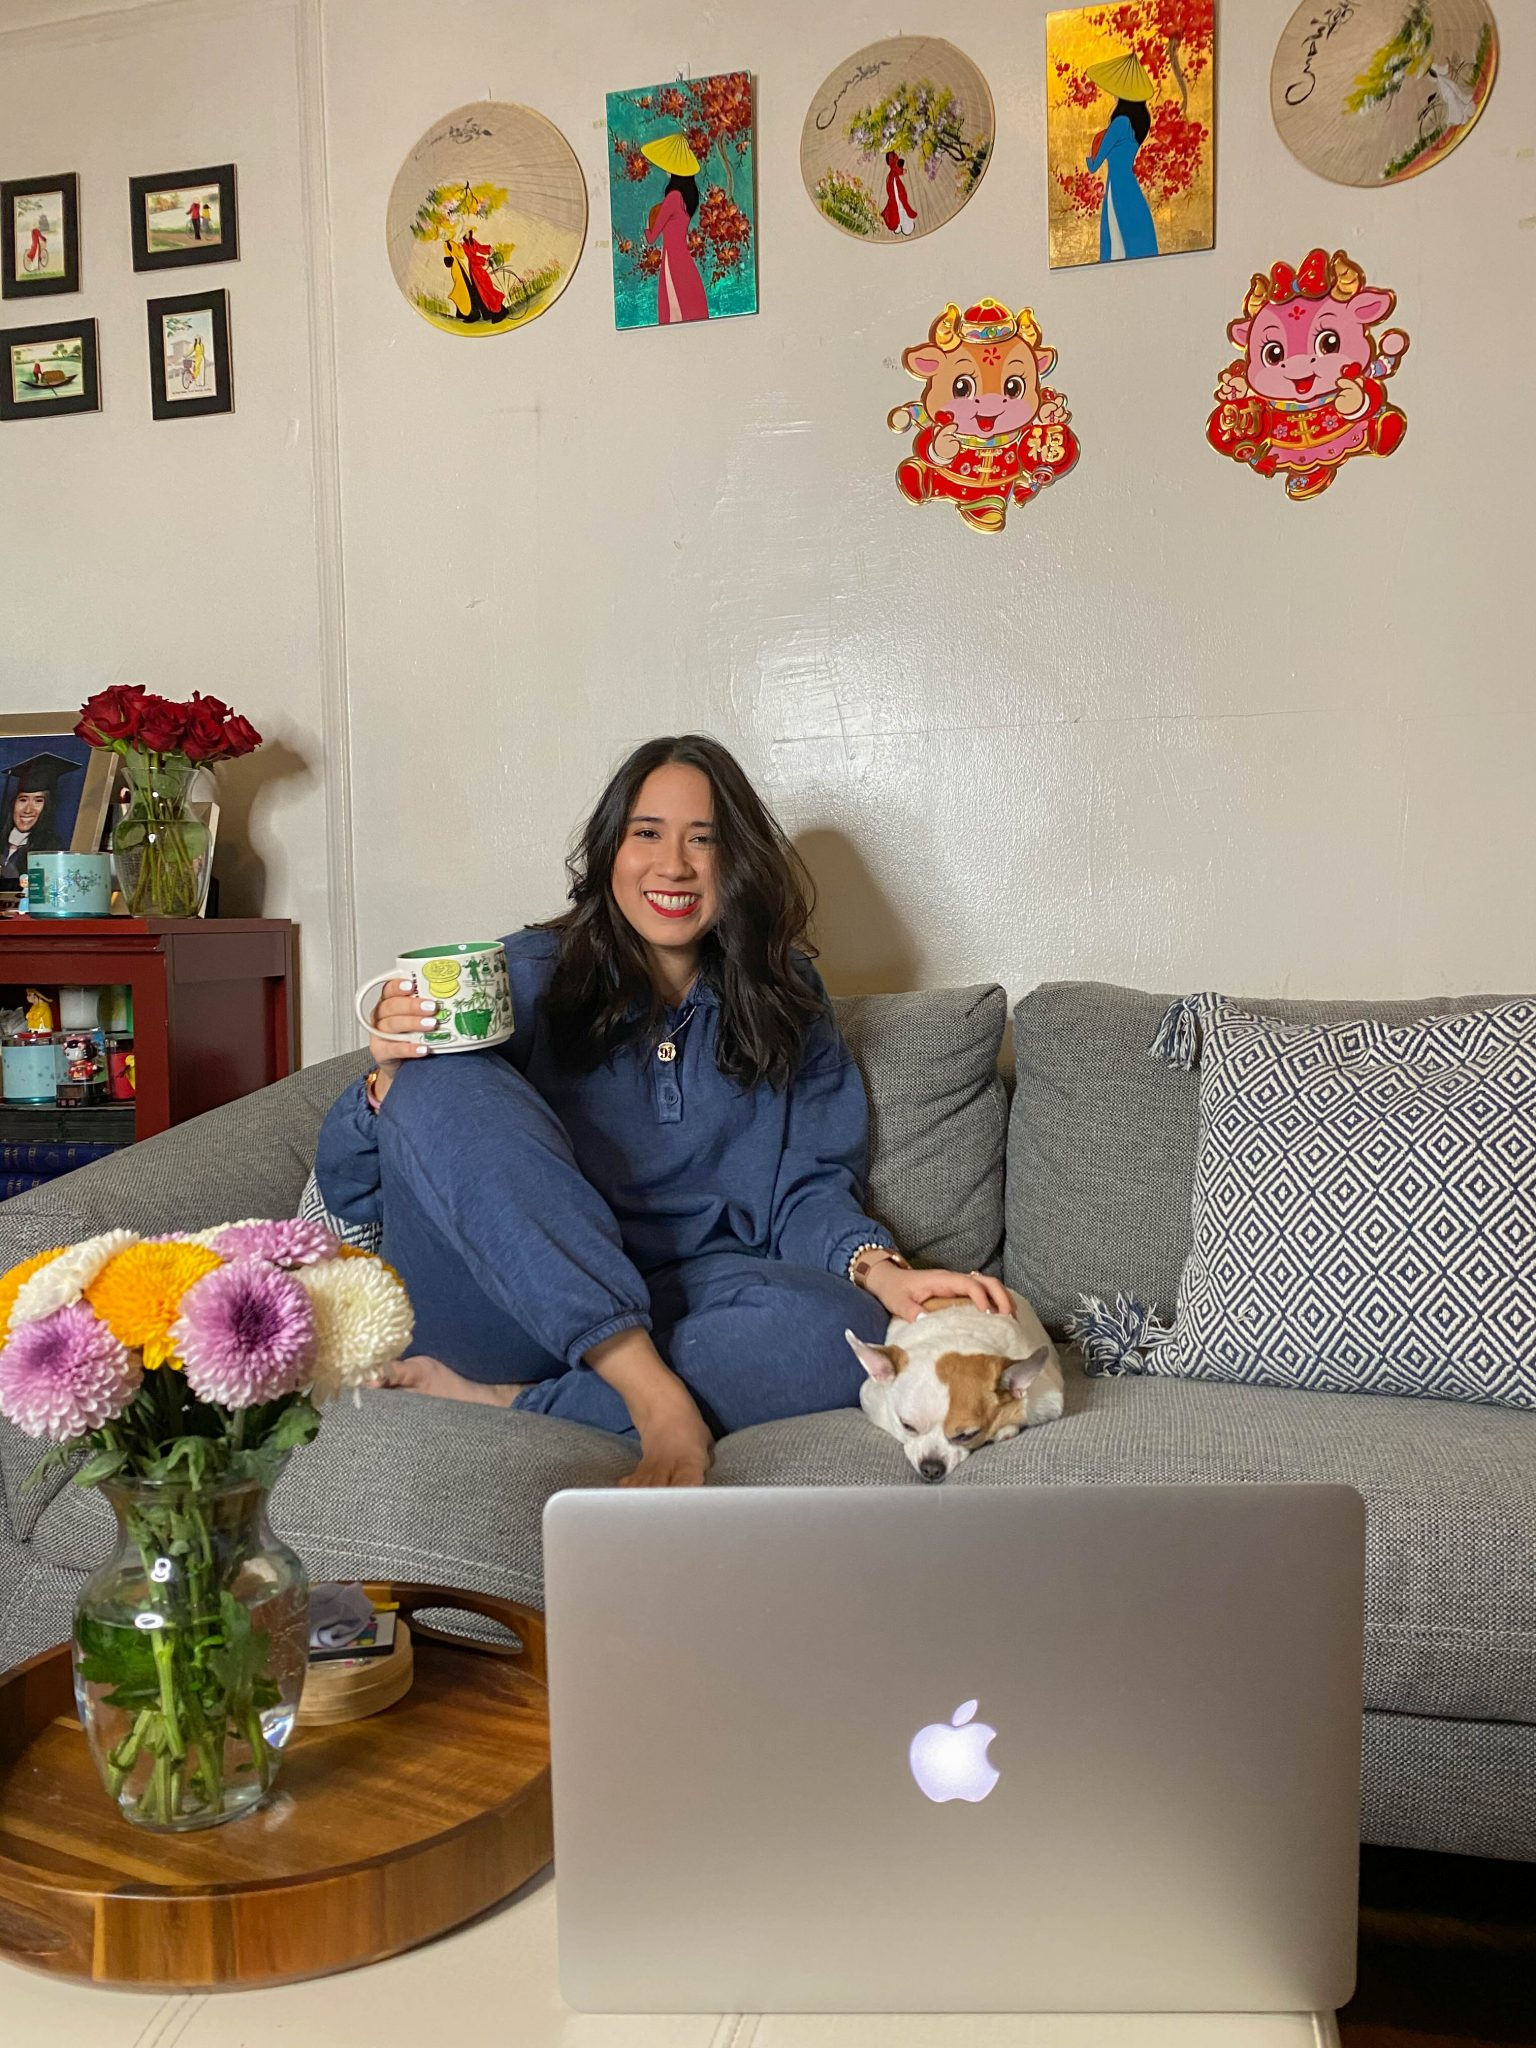 5 Things I'm Currently Loving by Basically A Mess (photo of woman in Aerie Fleece of Mind lounge set at home in living room decor)